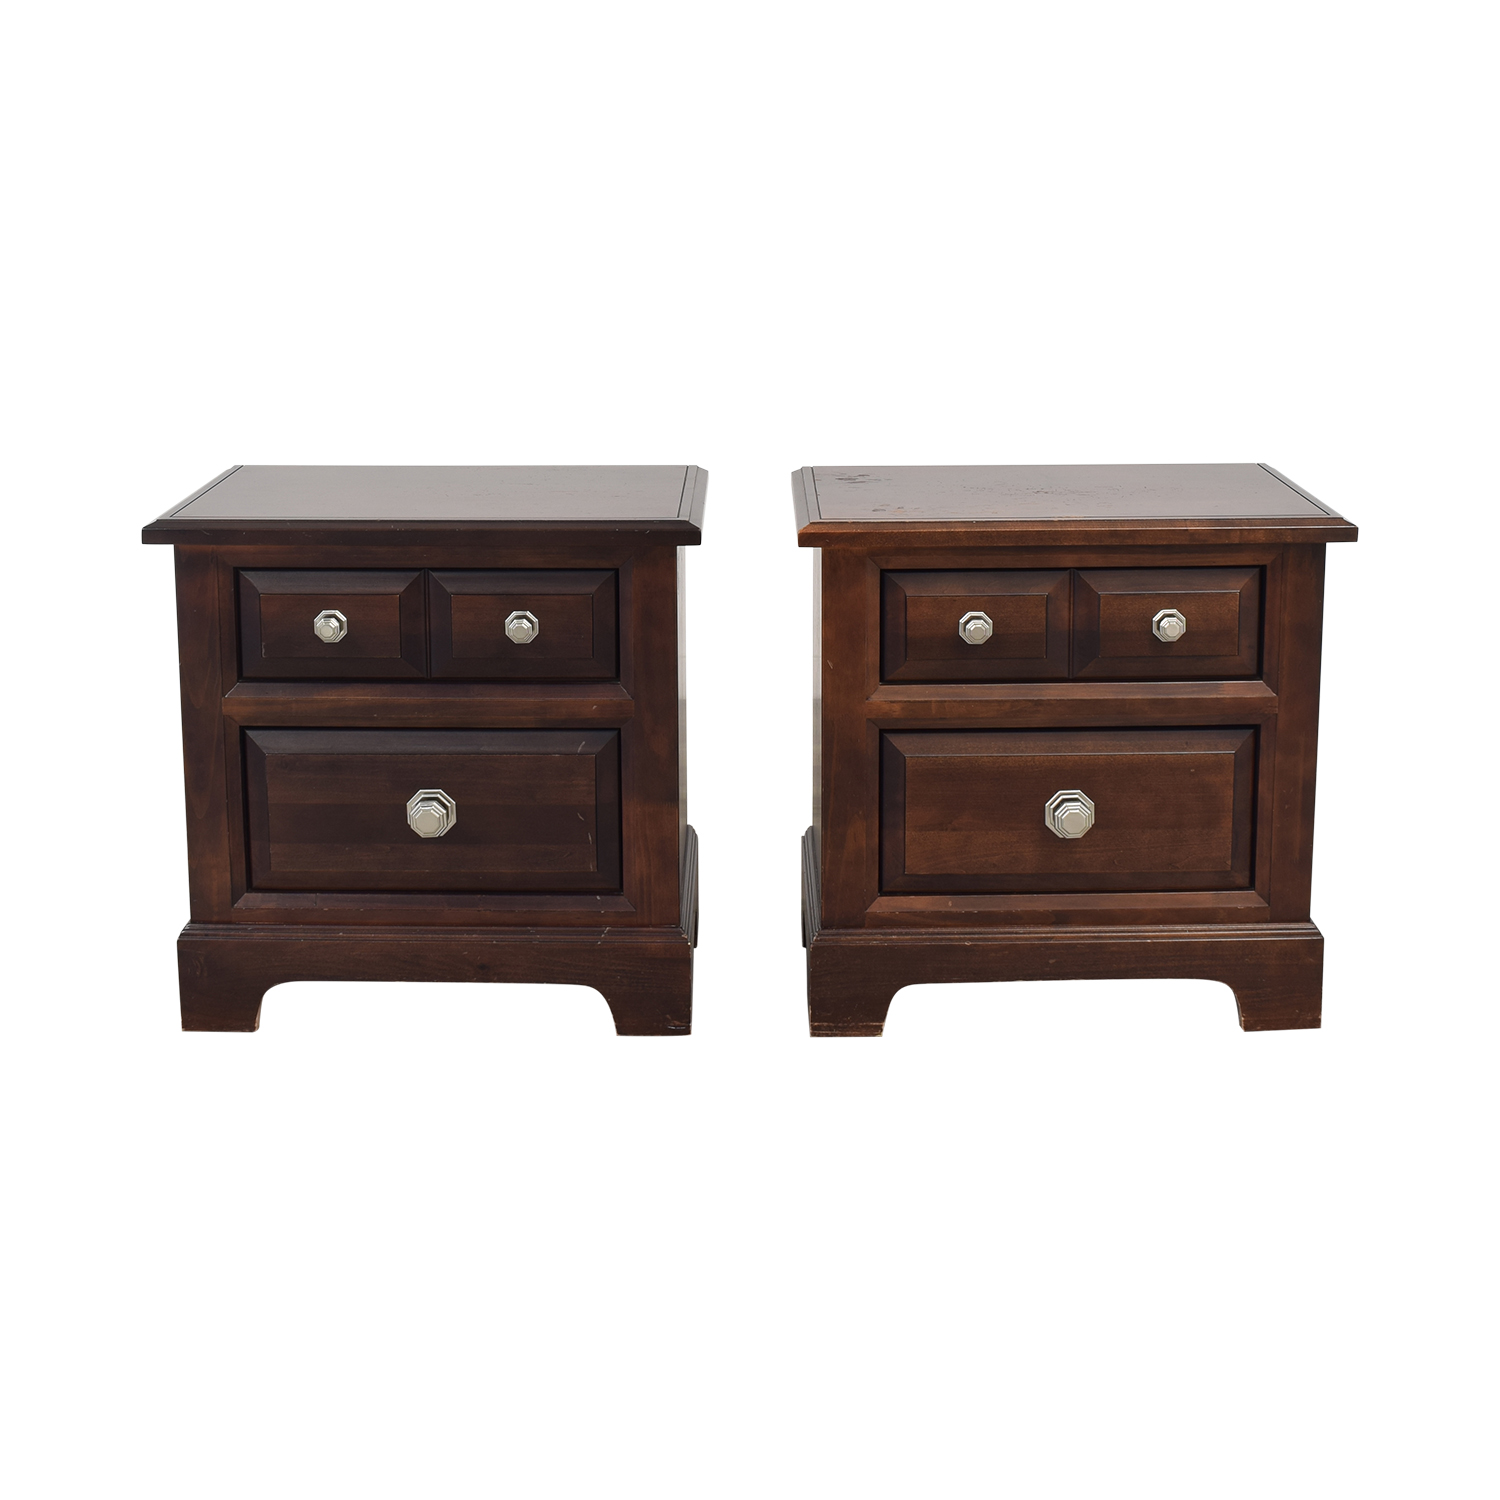 Vaughan-Bassett Raymour & Flanigan Nightstands Tables